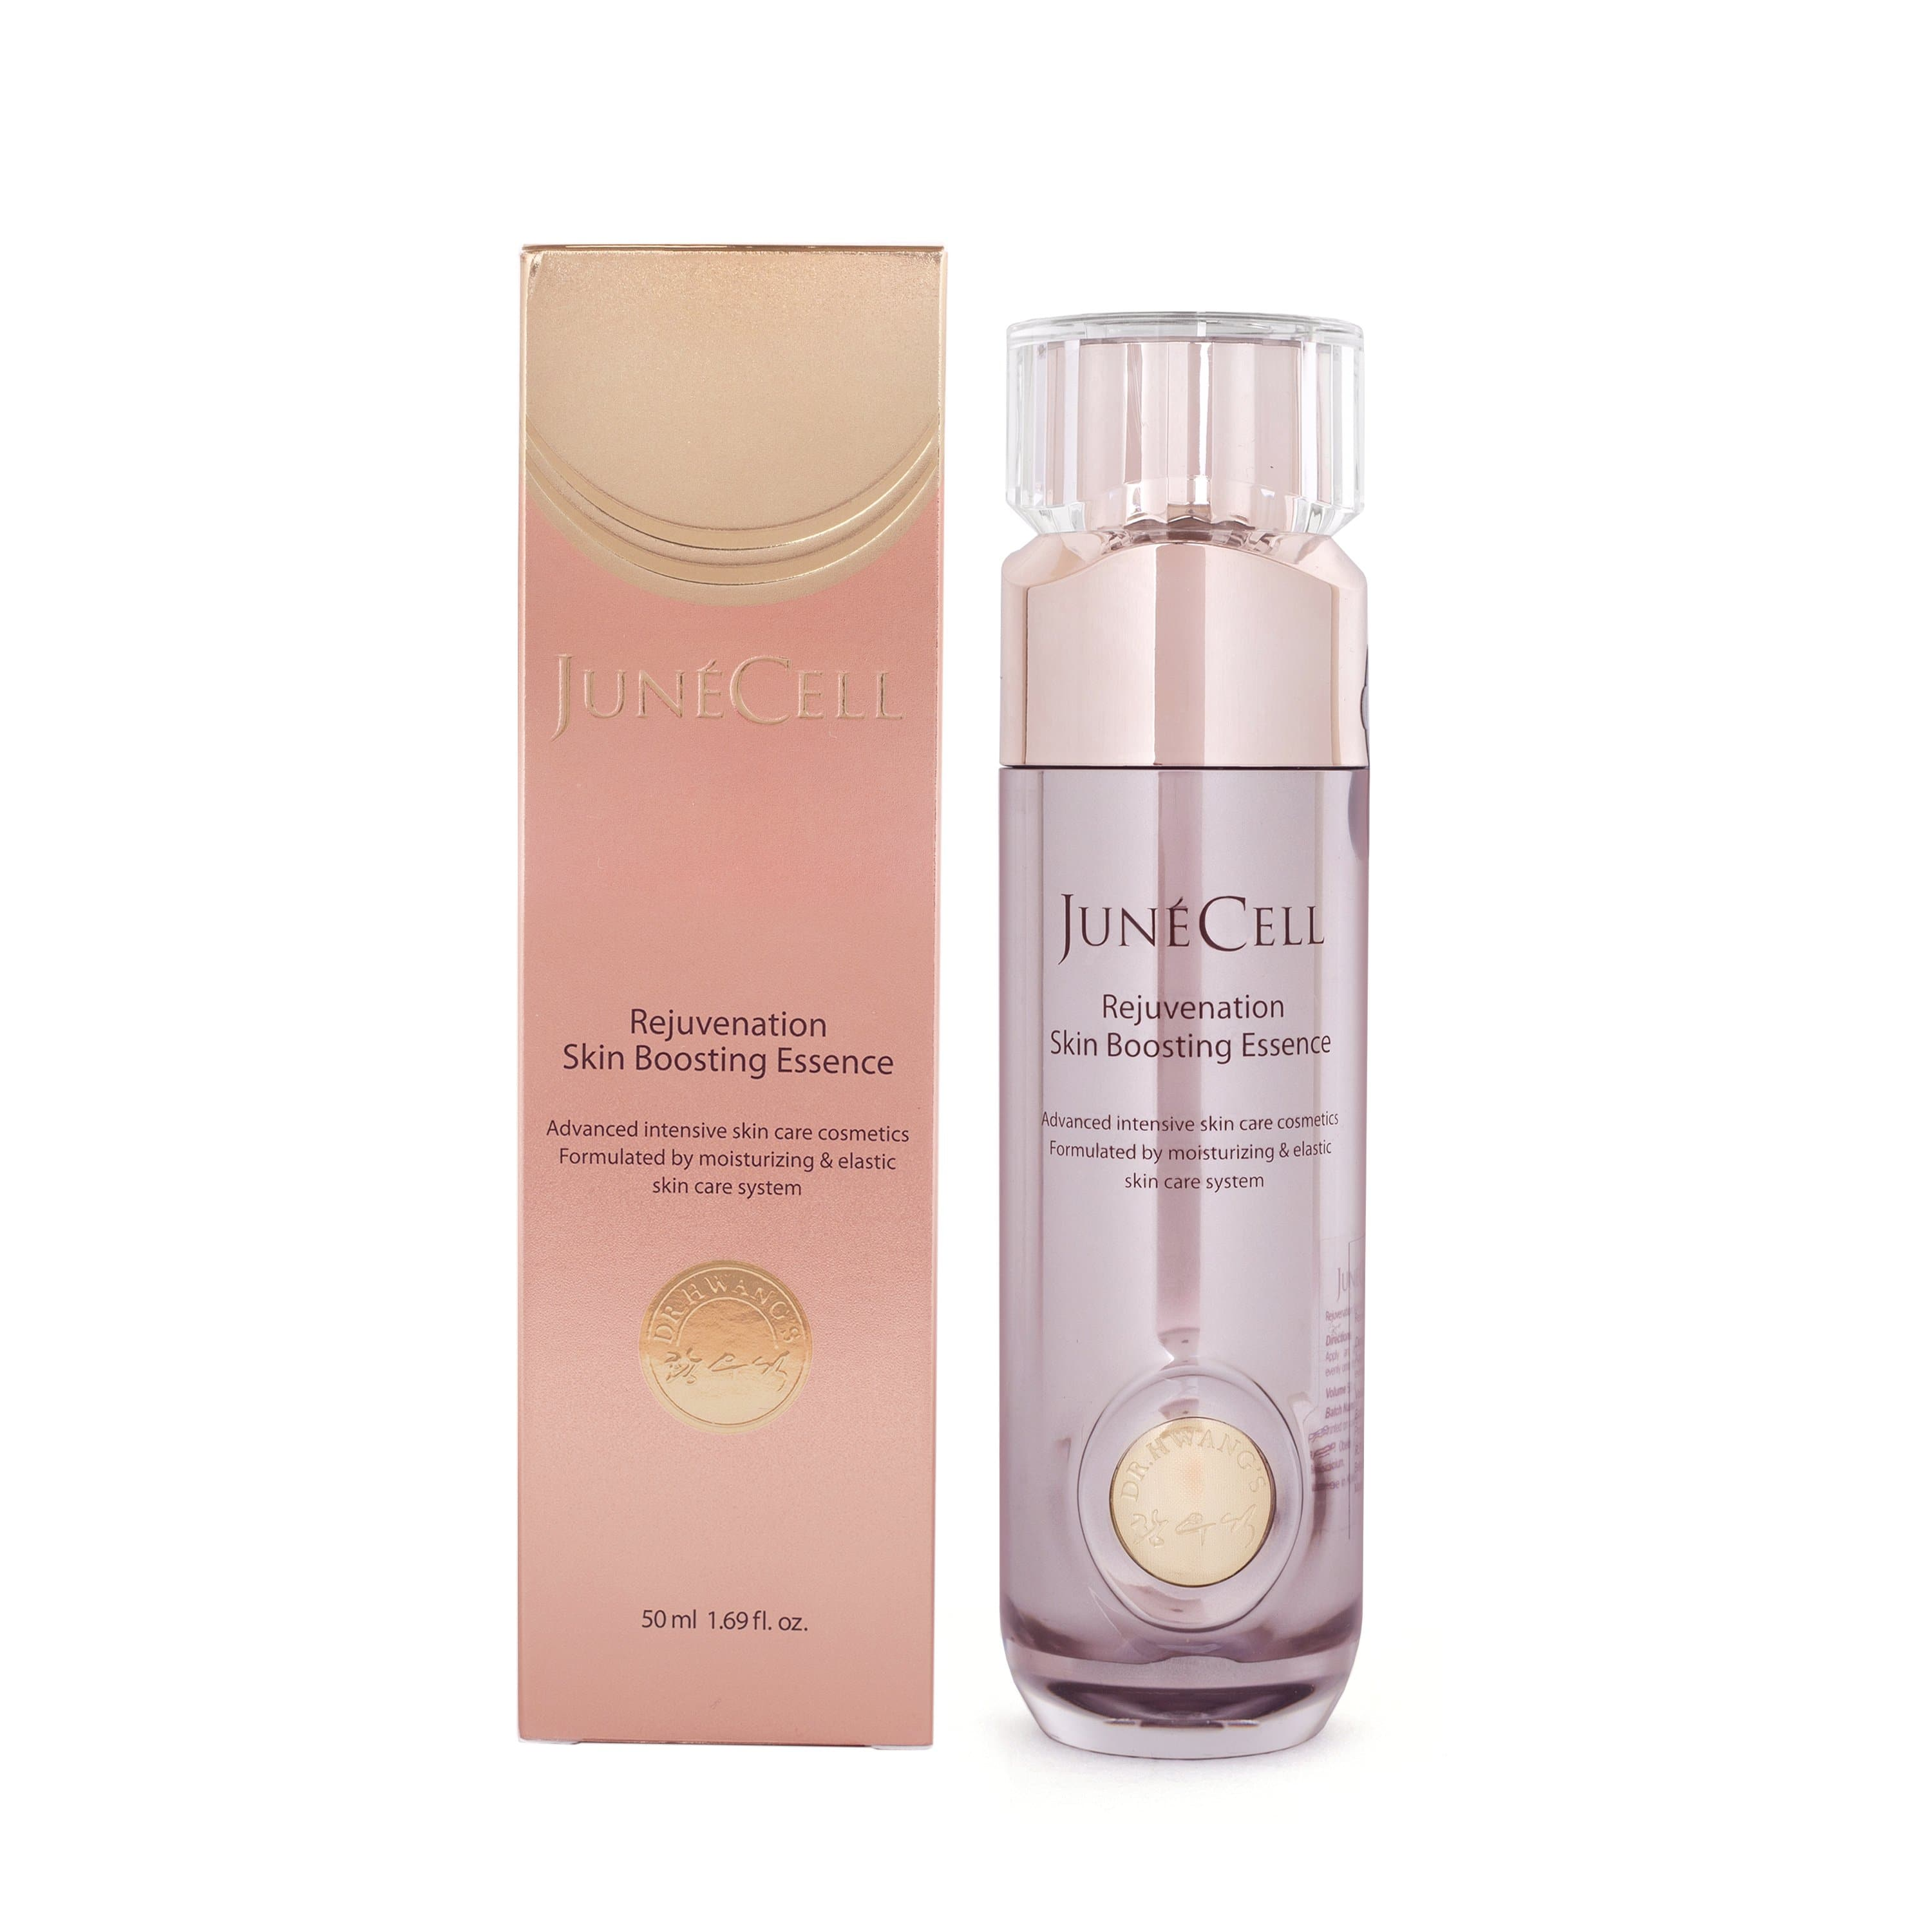 JunéCell Rejuvenation Skin Boosting Essence - Science To Skin